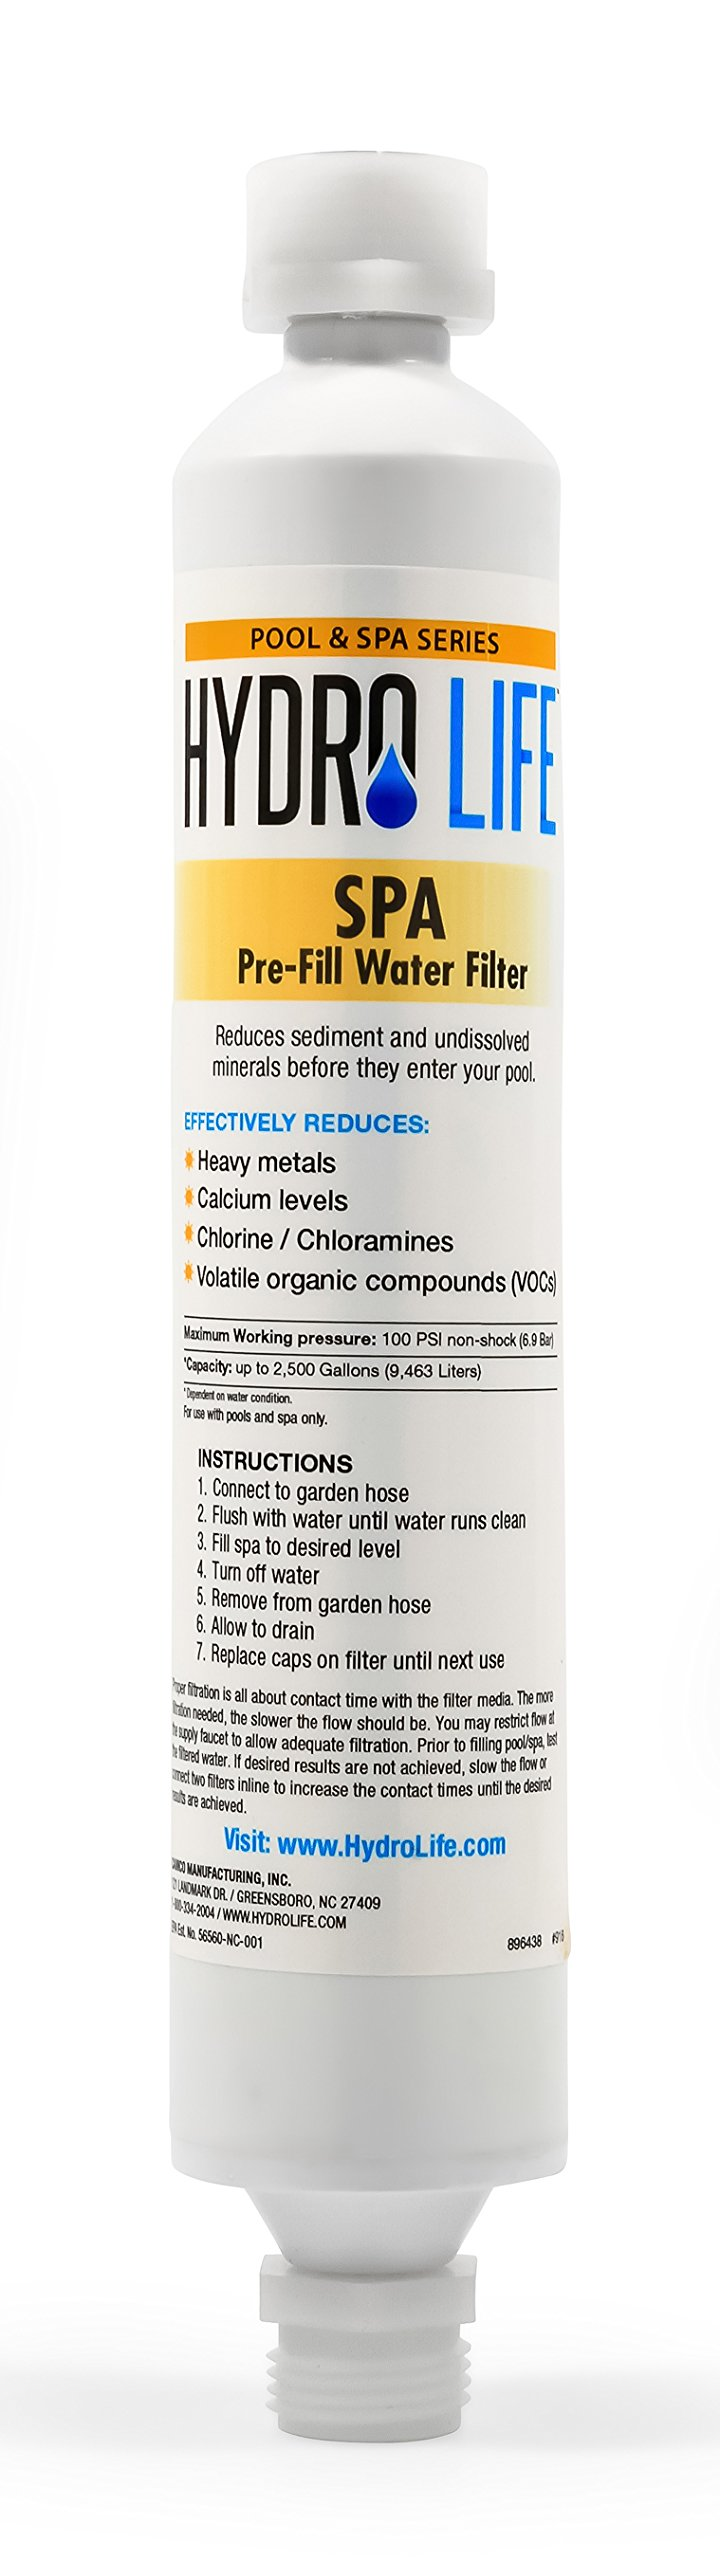 Hydro Life 52800 Spa Pre-Fill Water Filter by Hydro Life